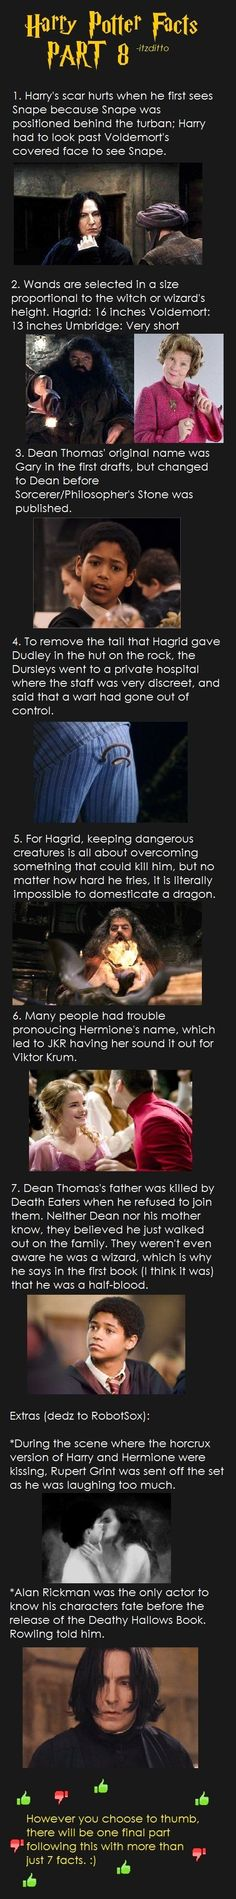 Harry Potter fun facts part 8.